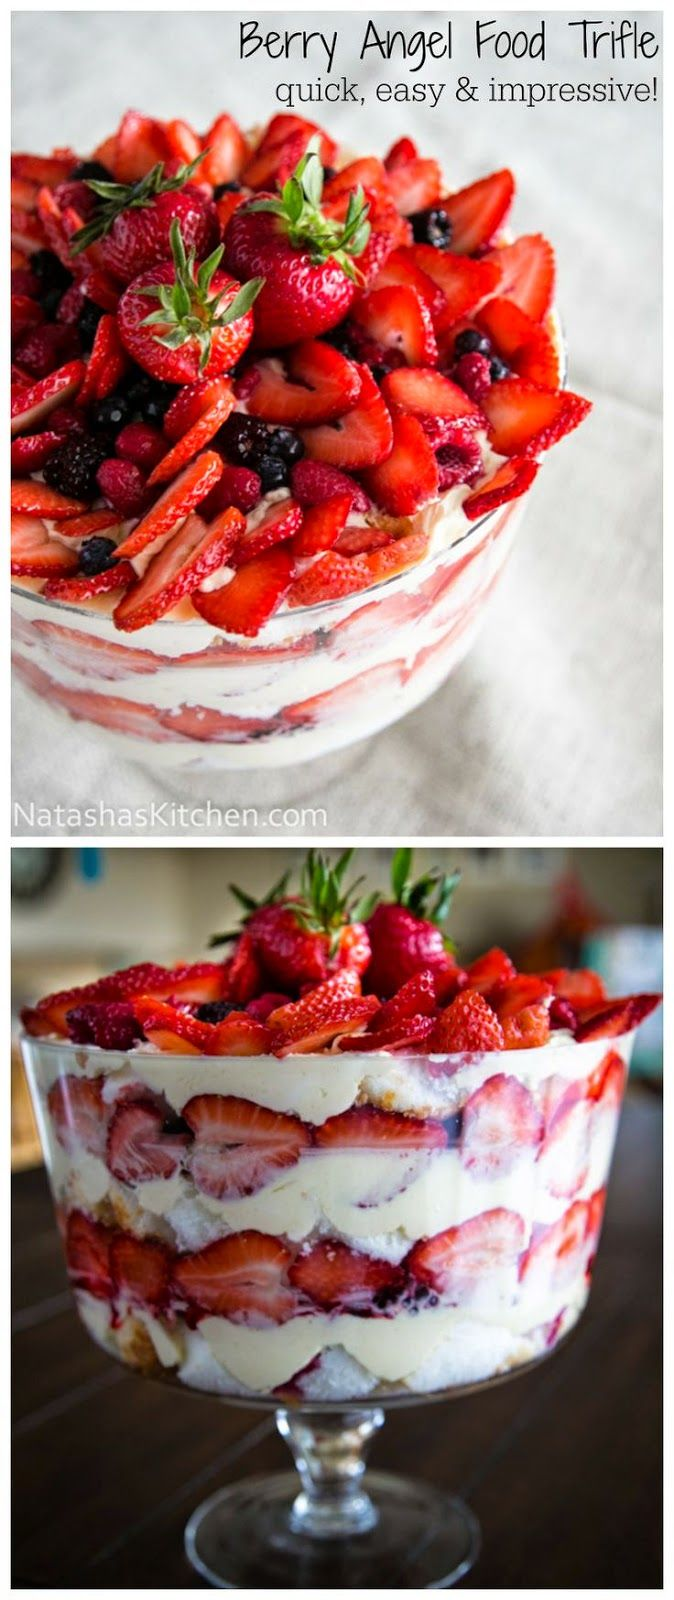 kitchen Recipes: Mixed Berry and Angel Food Trifle Recipe